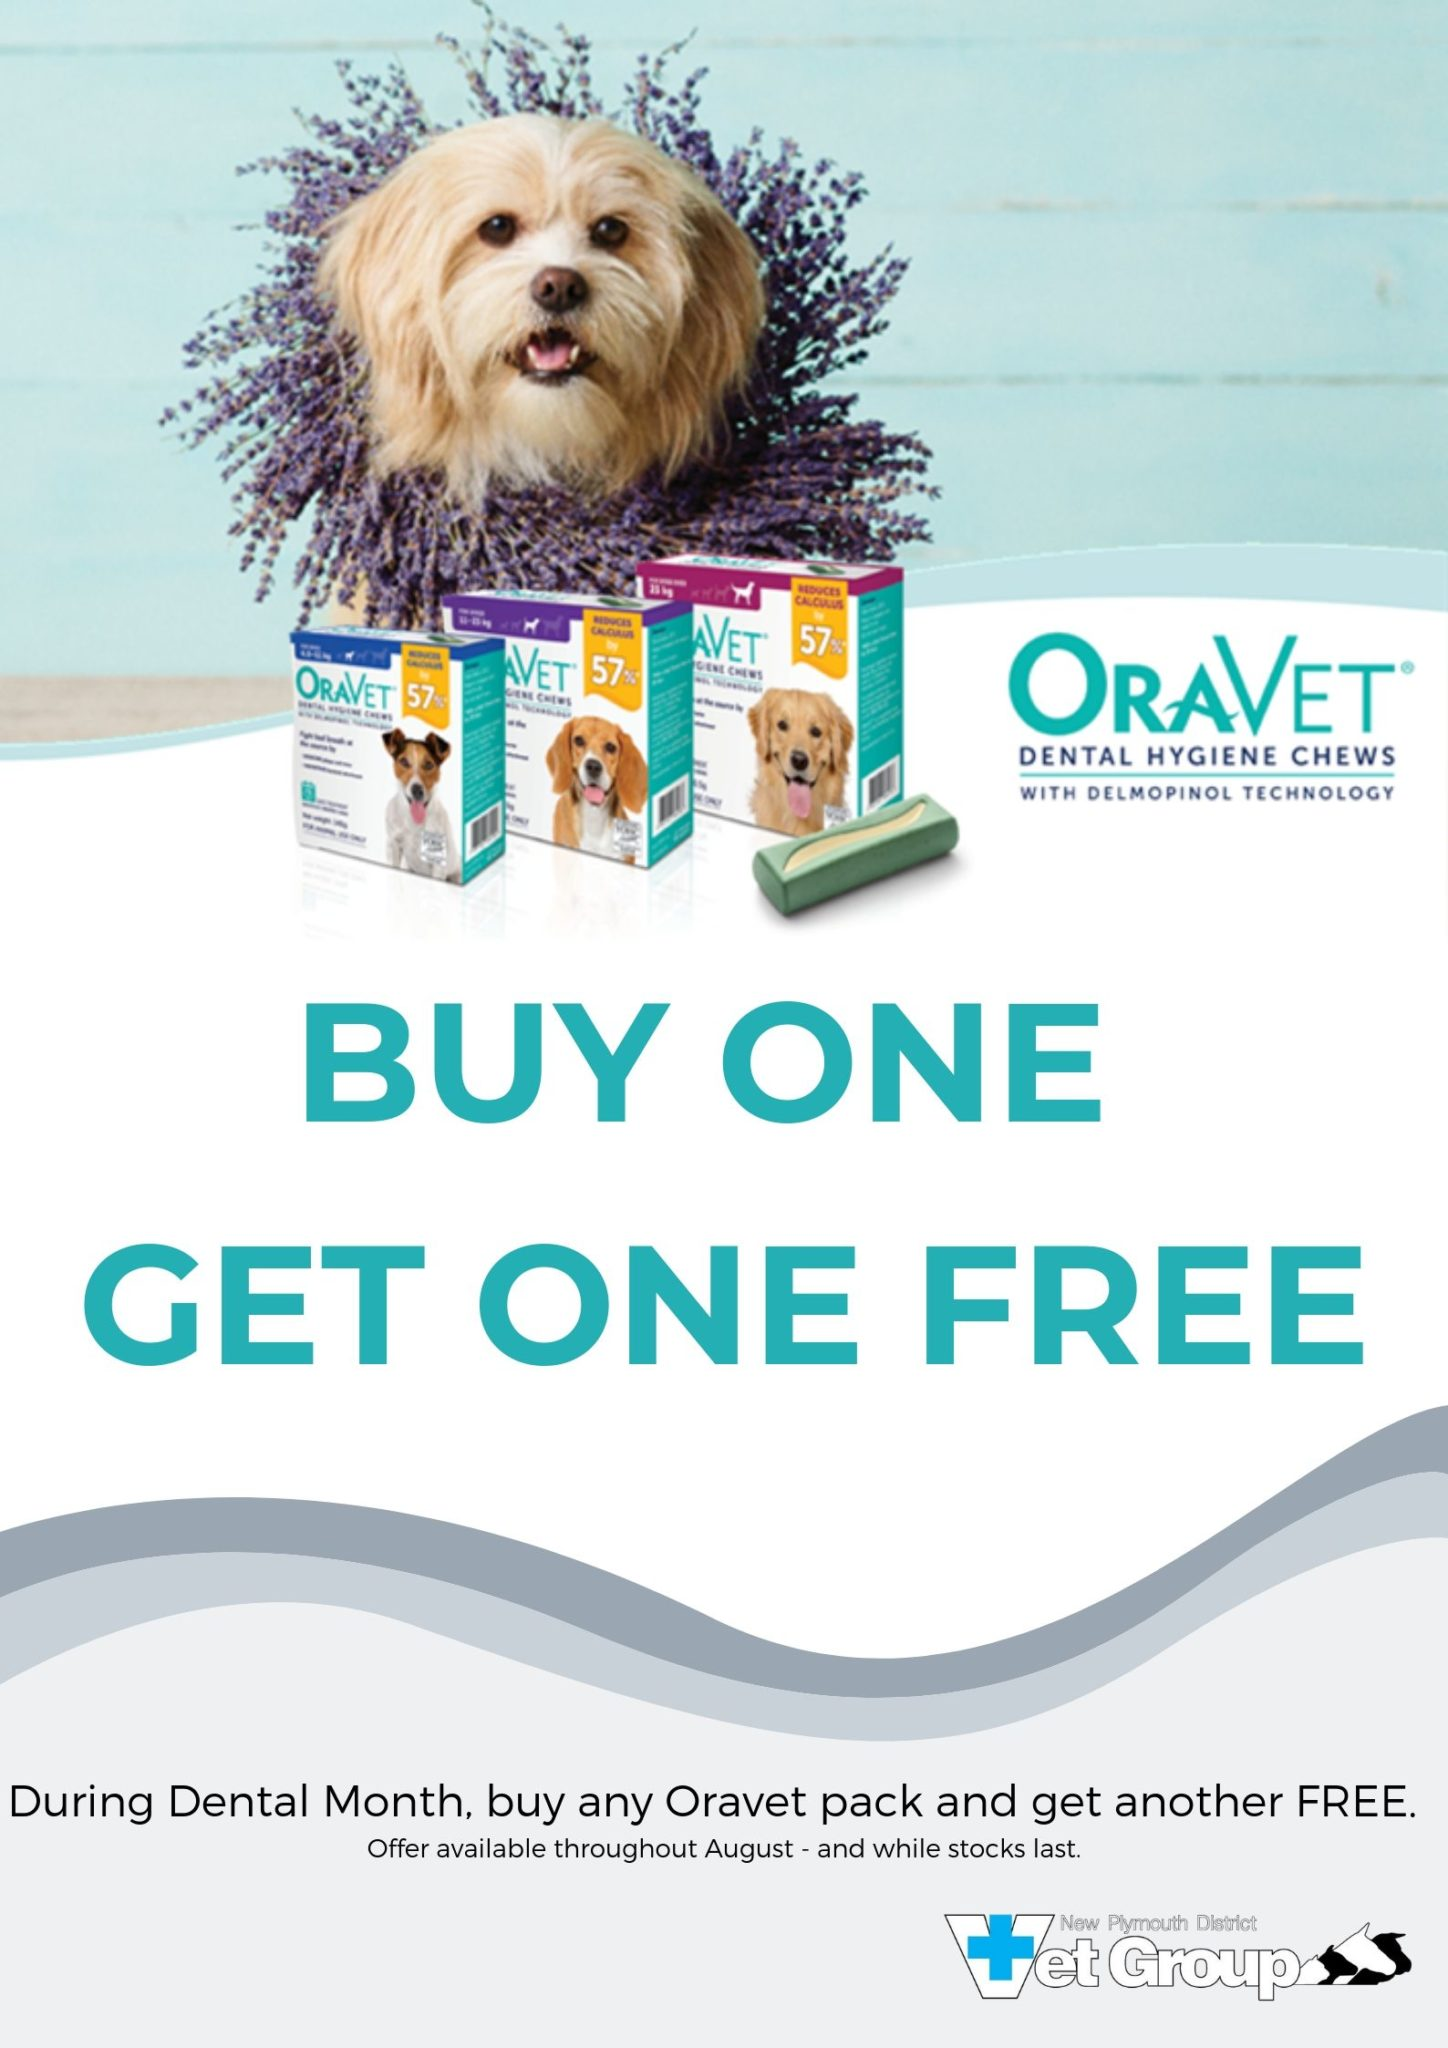 BUY ONE GET ONE FREE With Oravet